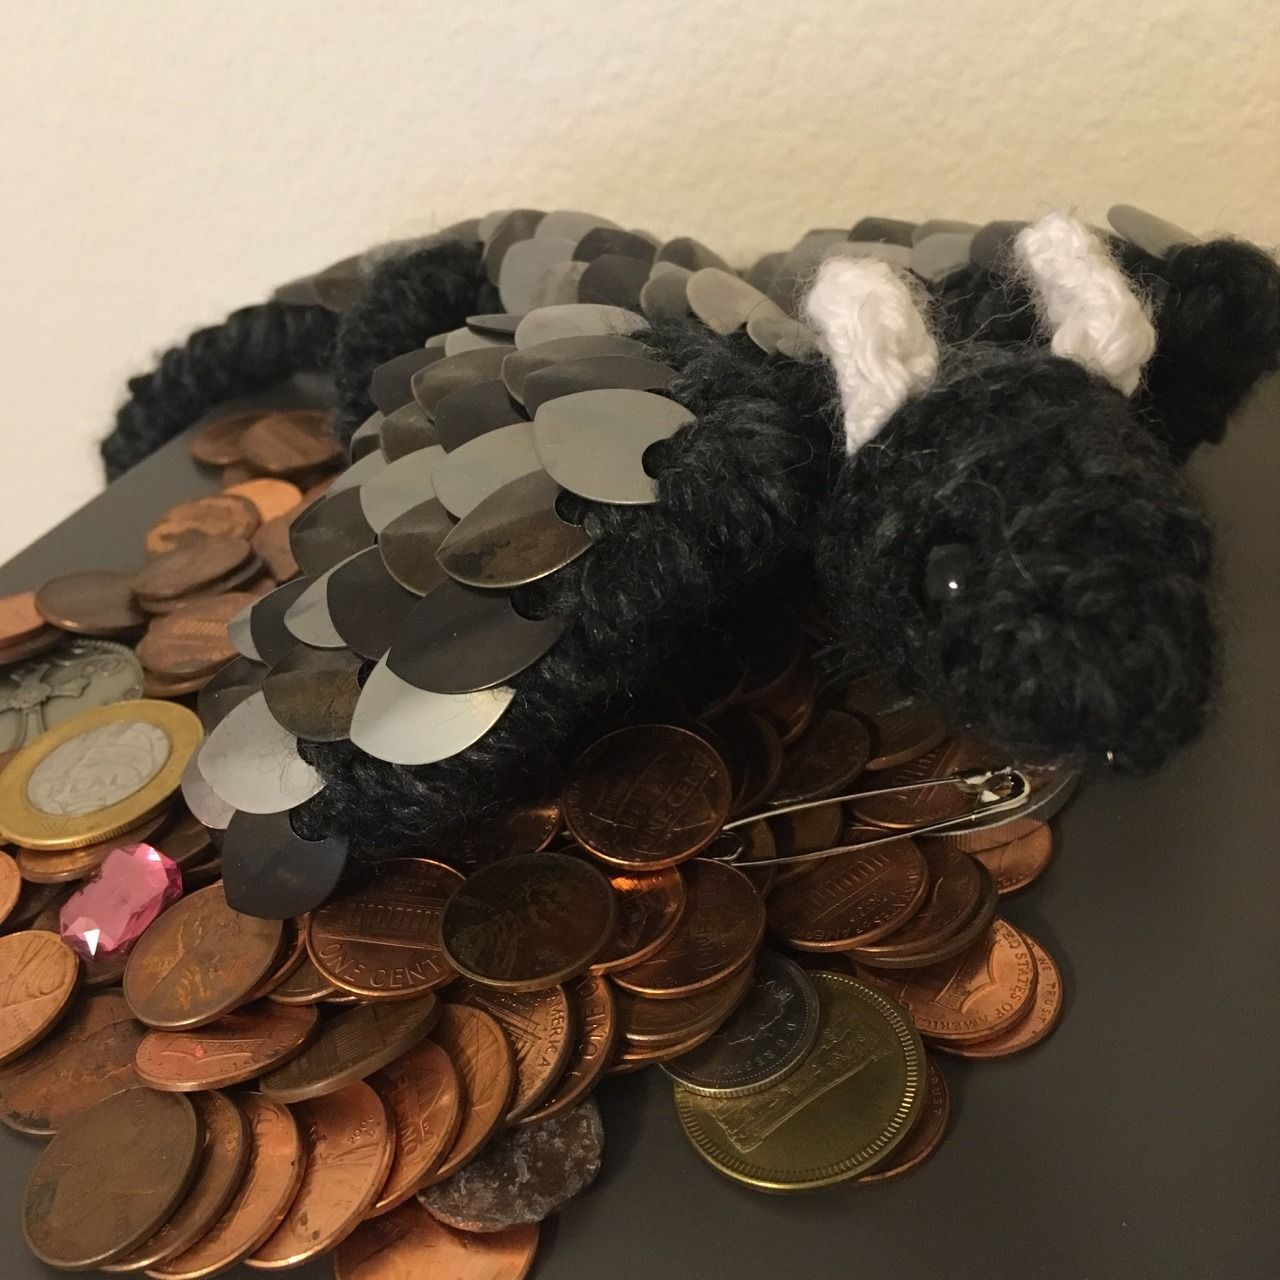 """Tj-crochets: My brother gave my dragon its first hoard ❤️ - #""""Get #all #amigurumi #an #and #asthma #because #best #brother #Butt #crochet #dragon #for #hoard #is #It's #kicking #little #my #not #octopus #of #old #photo #picture #reblogging #so #tag #that's #the #this #twilight #you"""